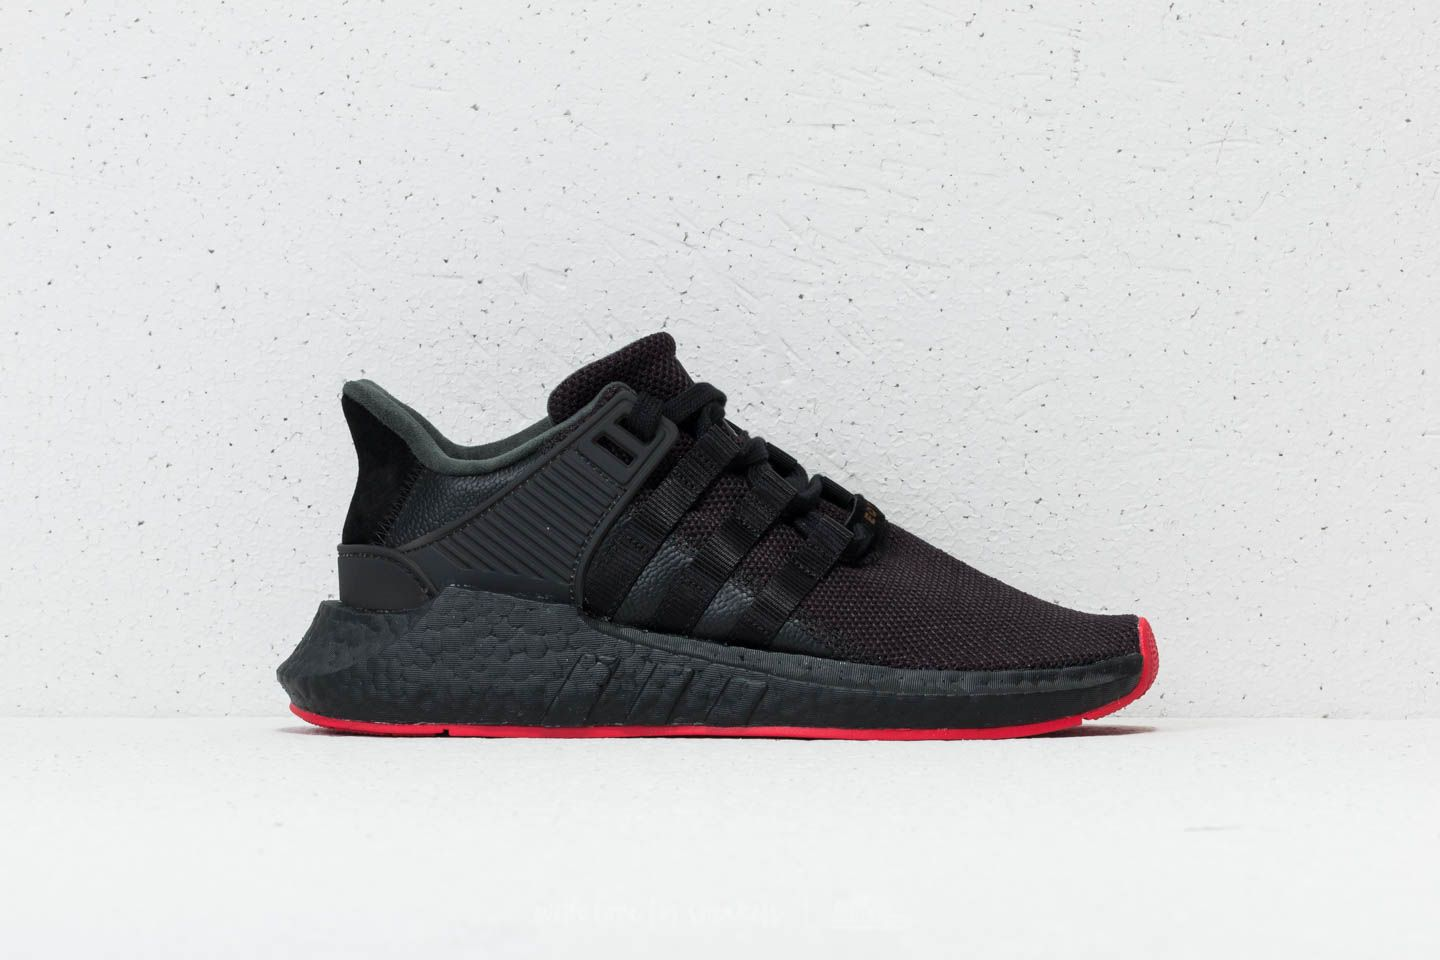 factory price c9222 f4bad adidas EQT Support 9317 Core Black Core Black Core Black at a